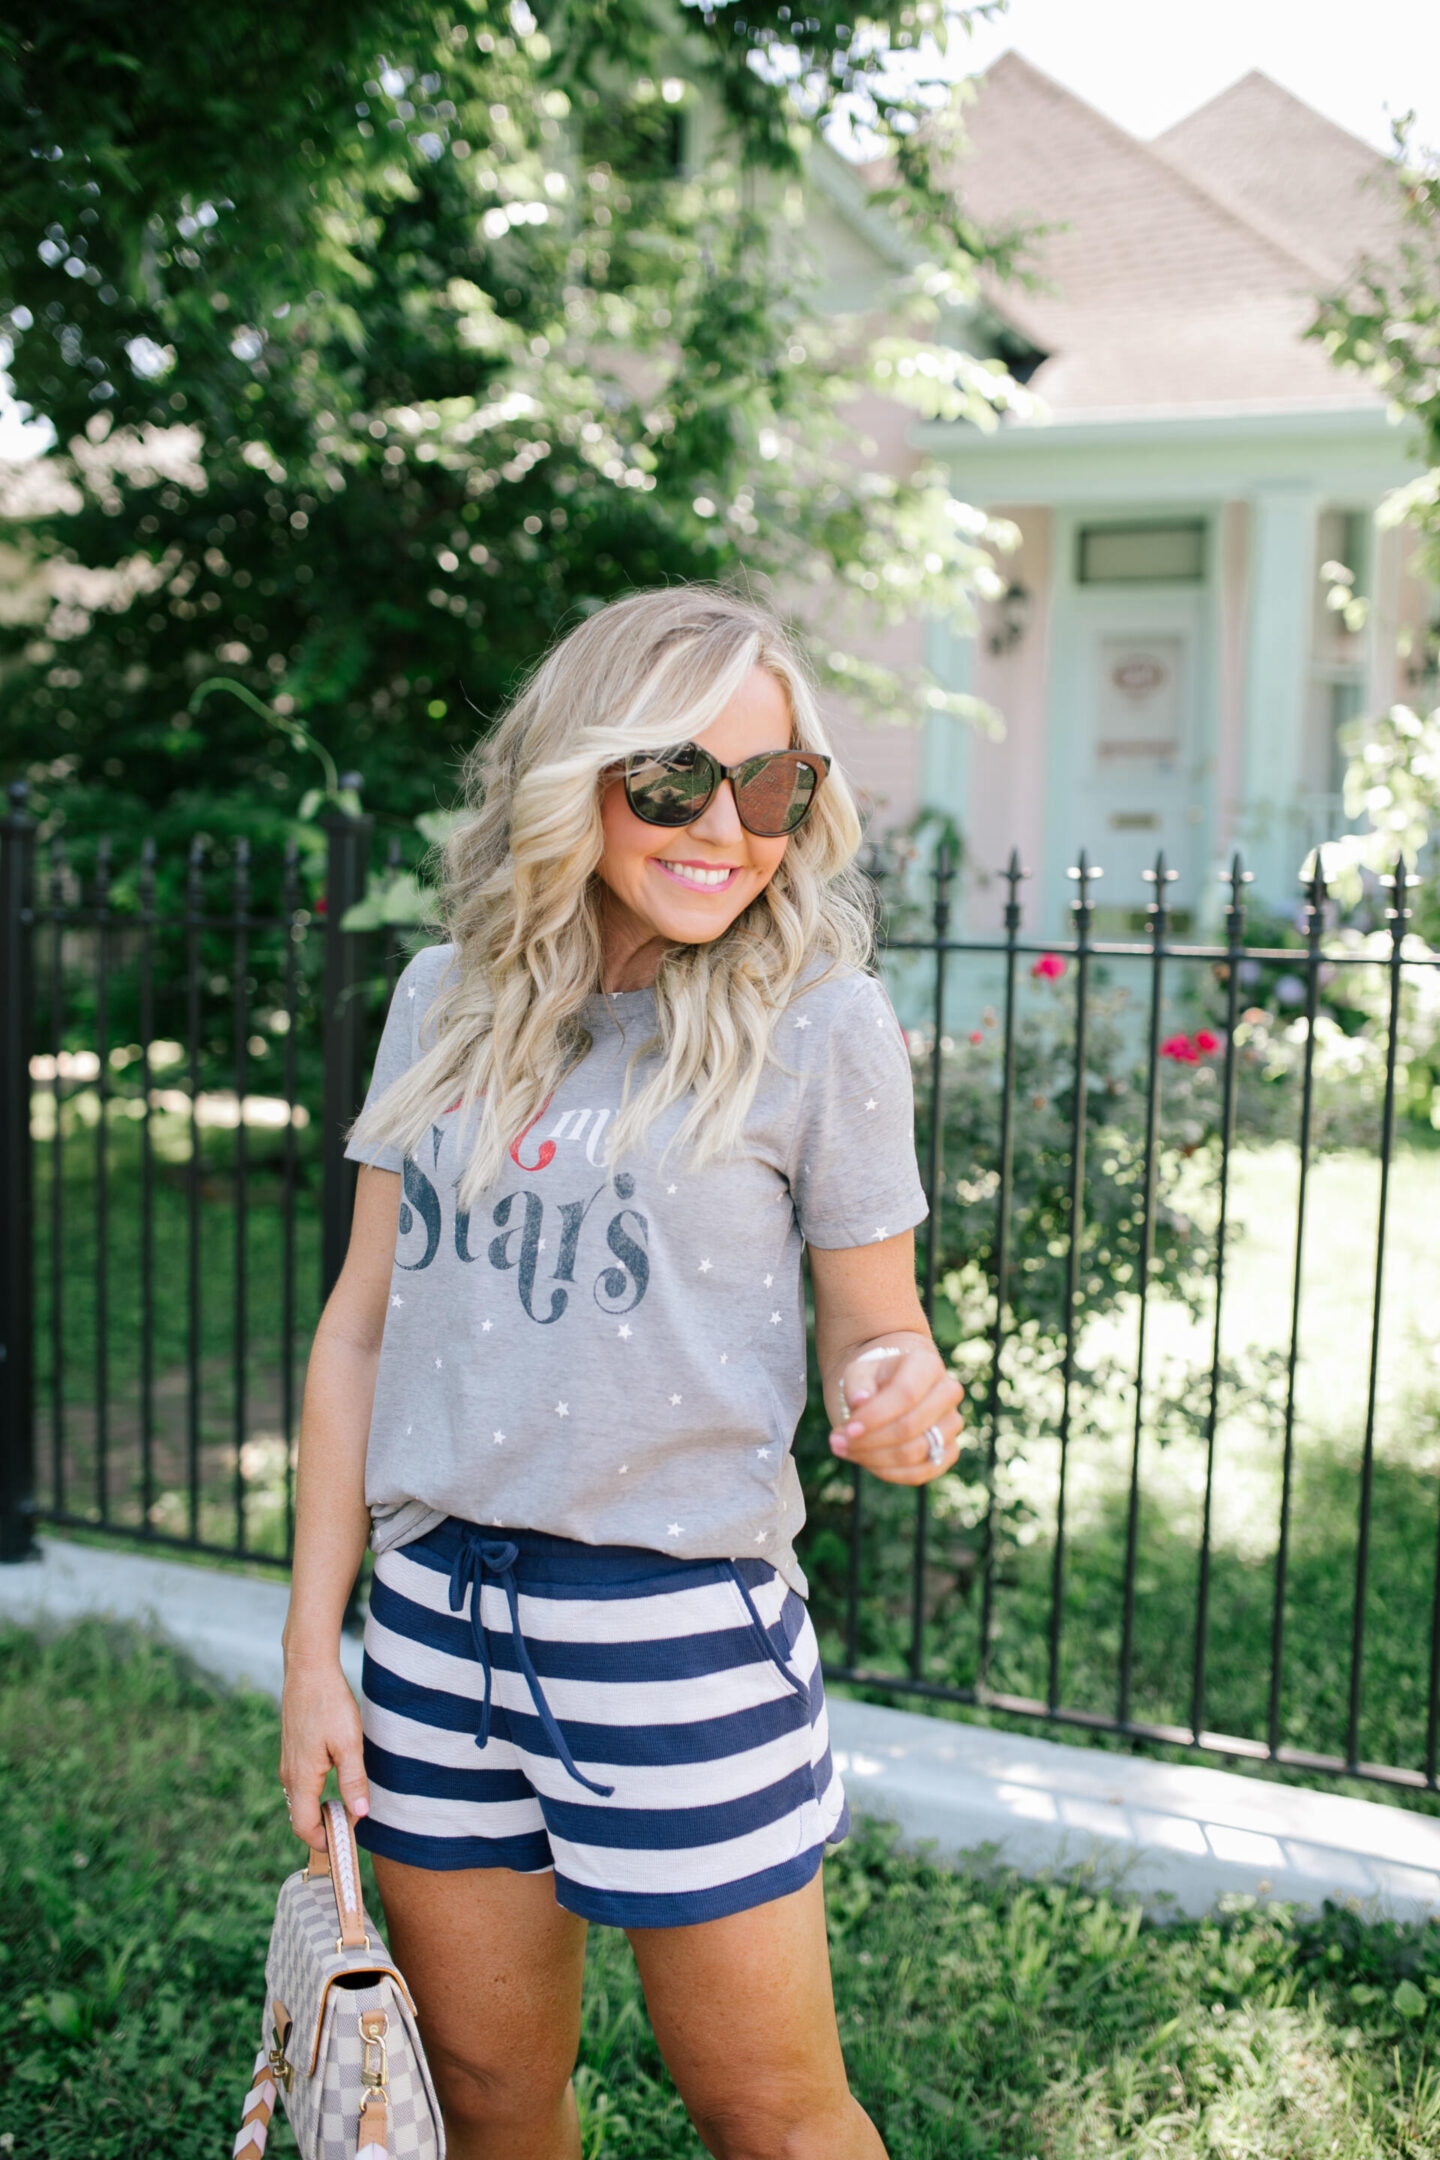 4th of July Outfits by popular Nashville fashion blog, Hello Happiness: image of a woman standing outside on a red brick walkway and wearing a grey Oh My Stars t-shrit with blue and white stripe shorts, sliver and white sneakers and holding a grey and white checkered handbag.